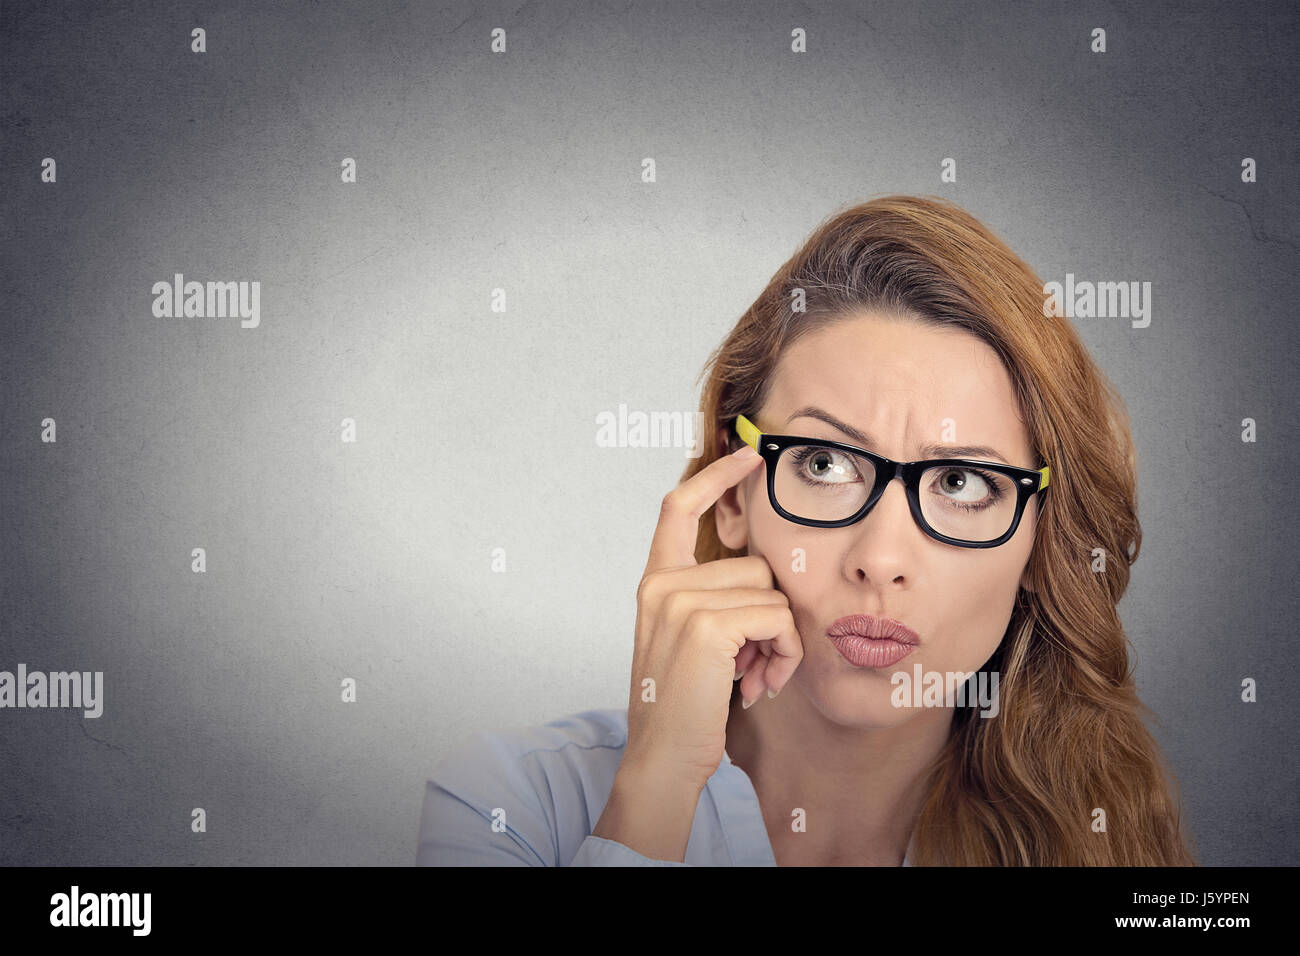 Can't remember. Headshot thoughtful young woman with glasses looking confused isolated grey wall background. - Stock Image